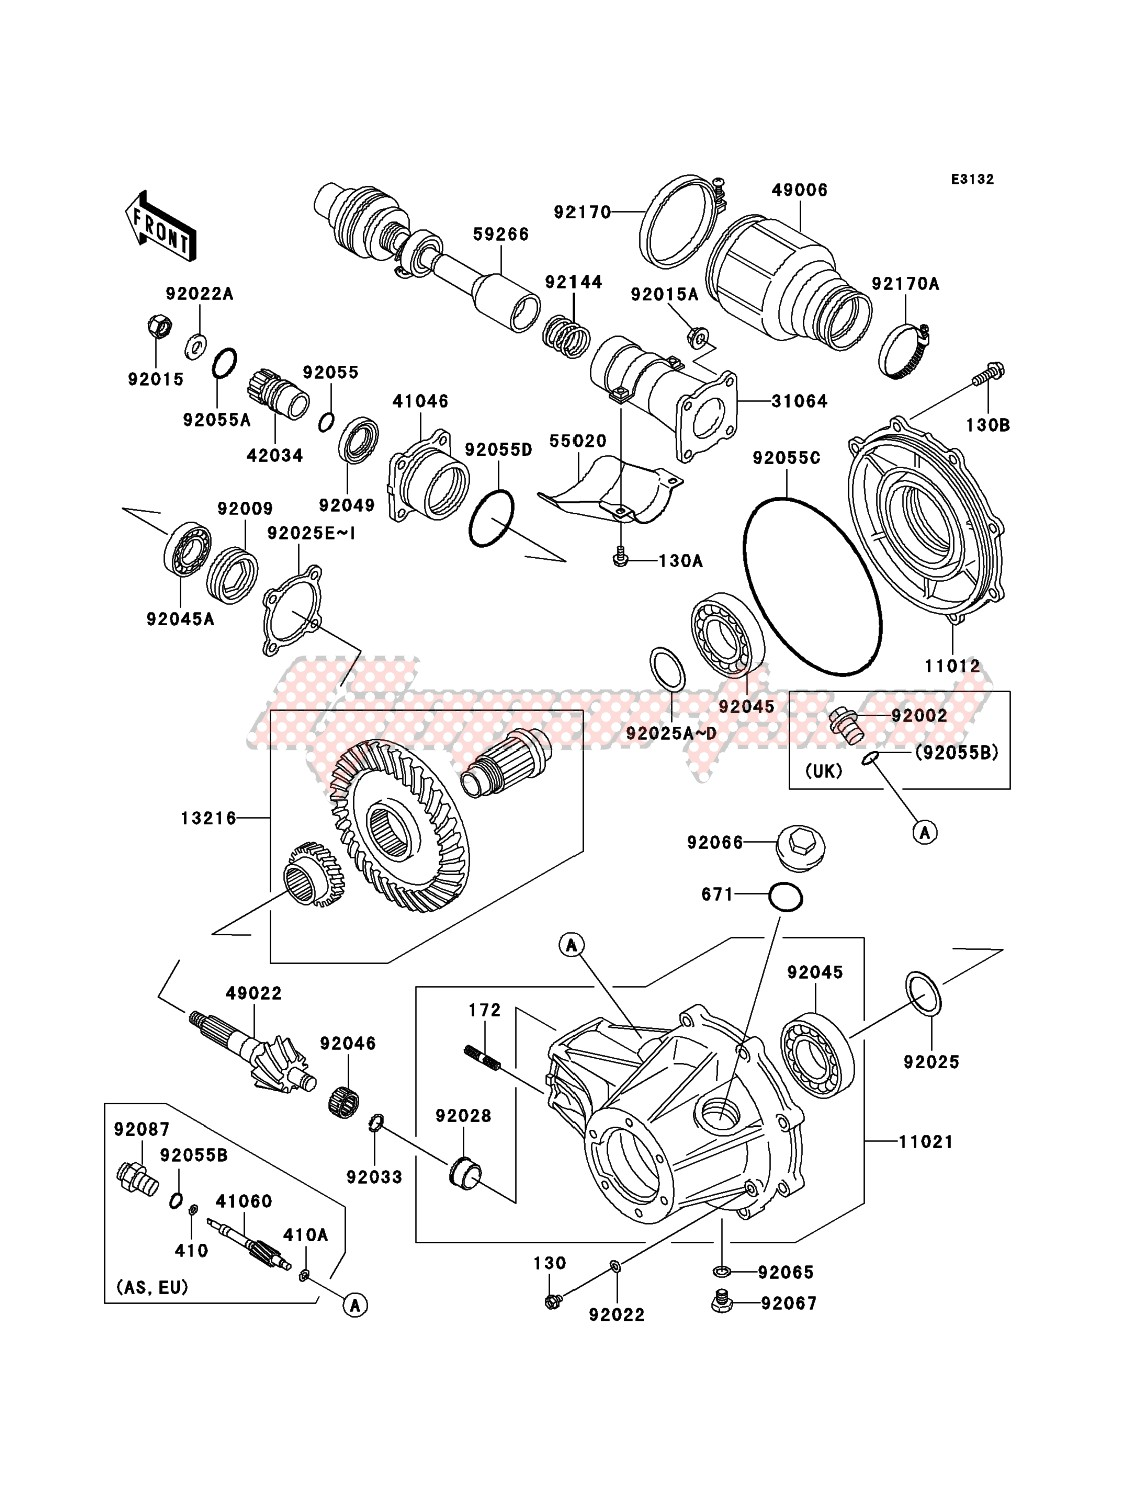 Engine-Drive Shaft/Final Gear